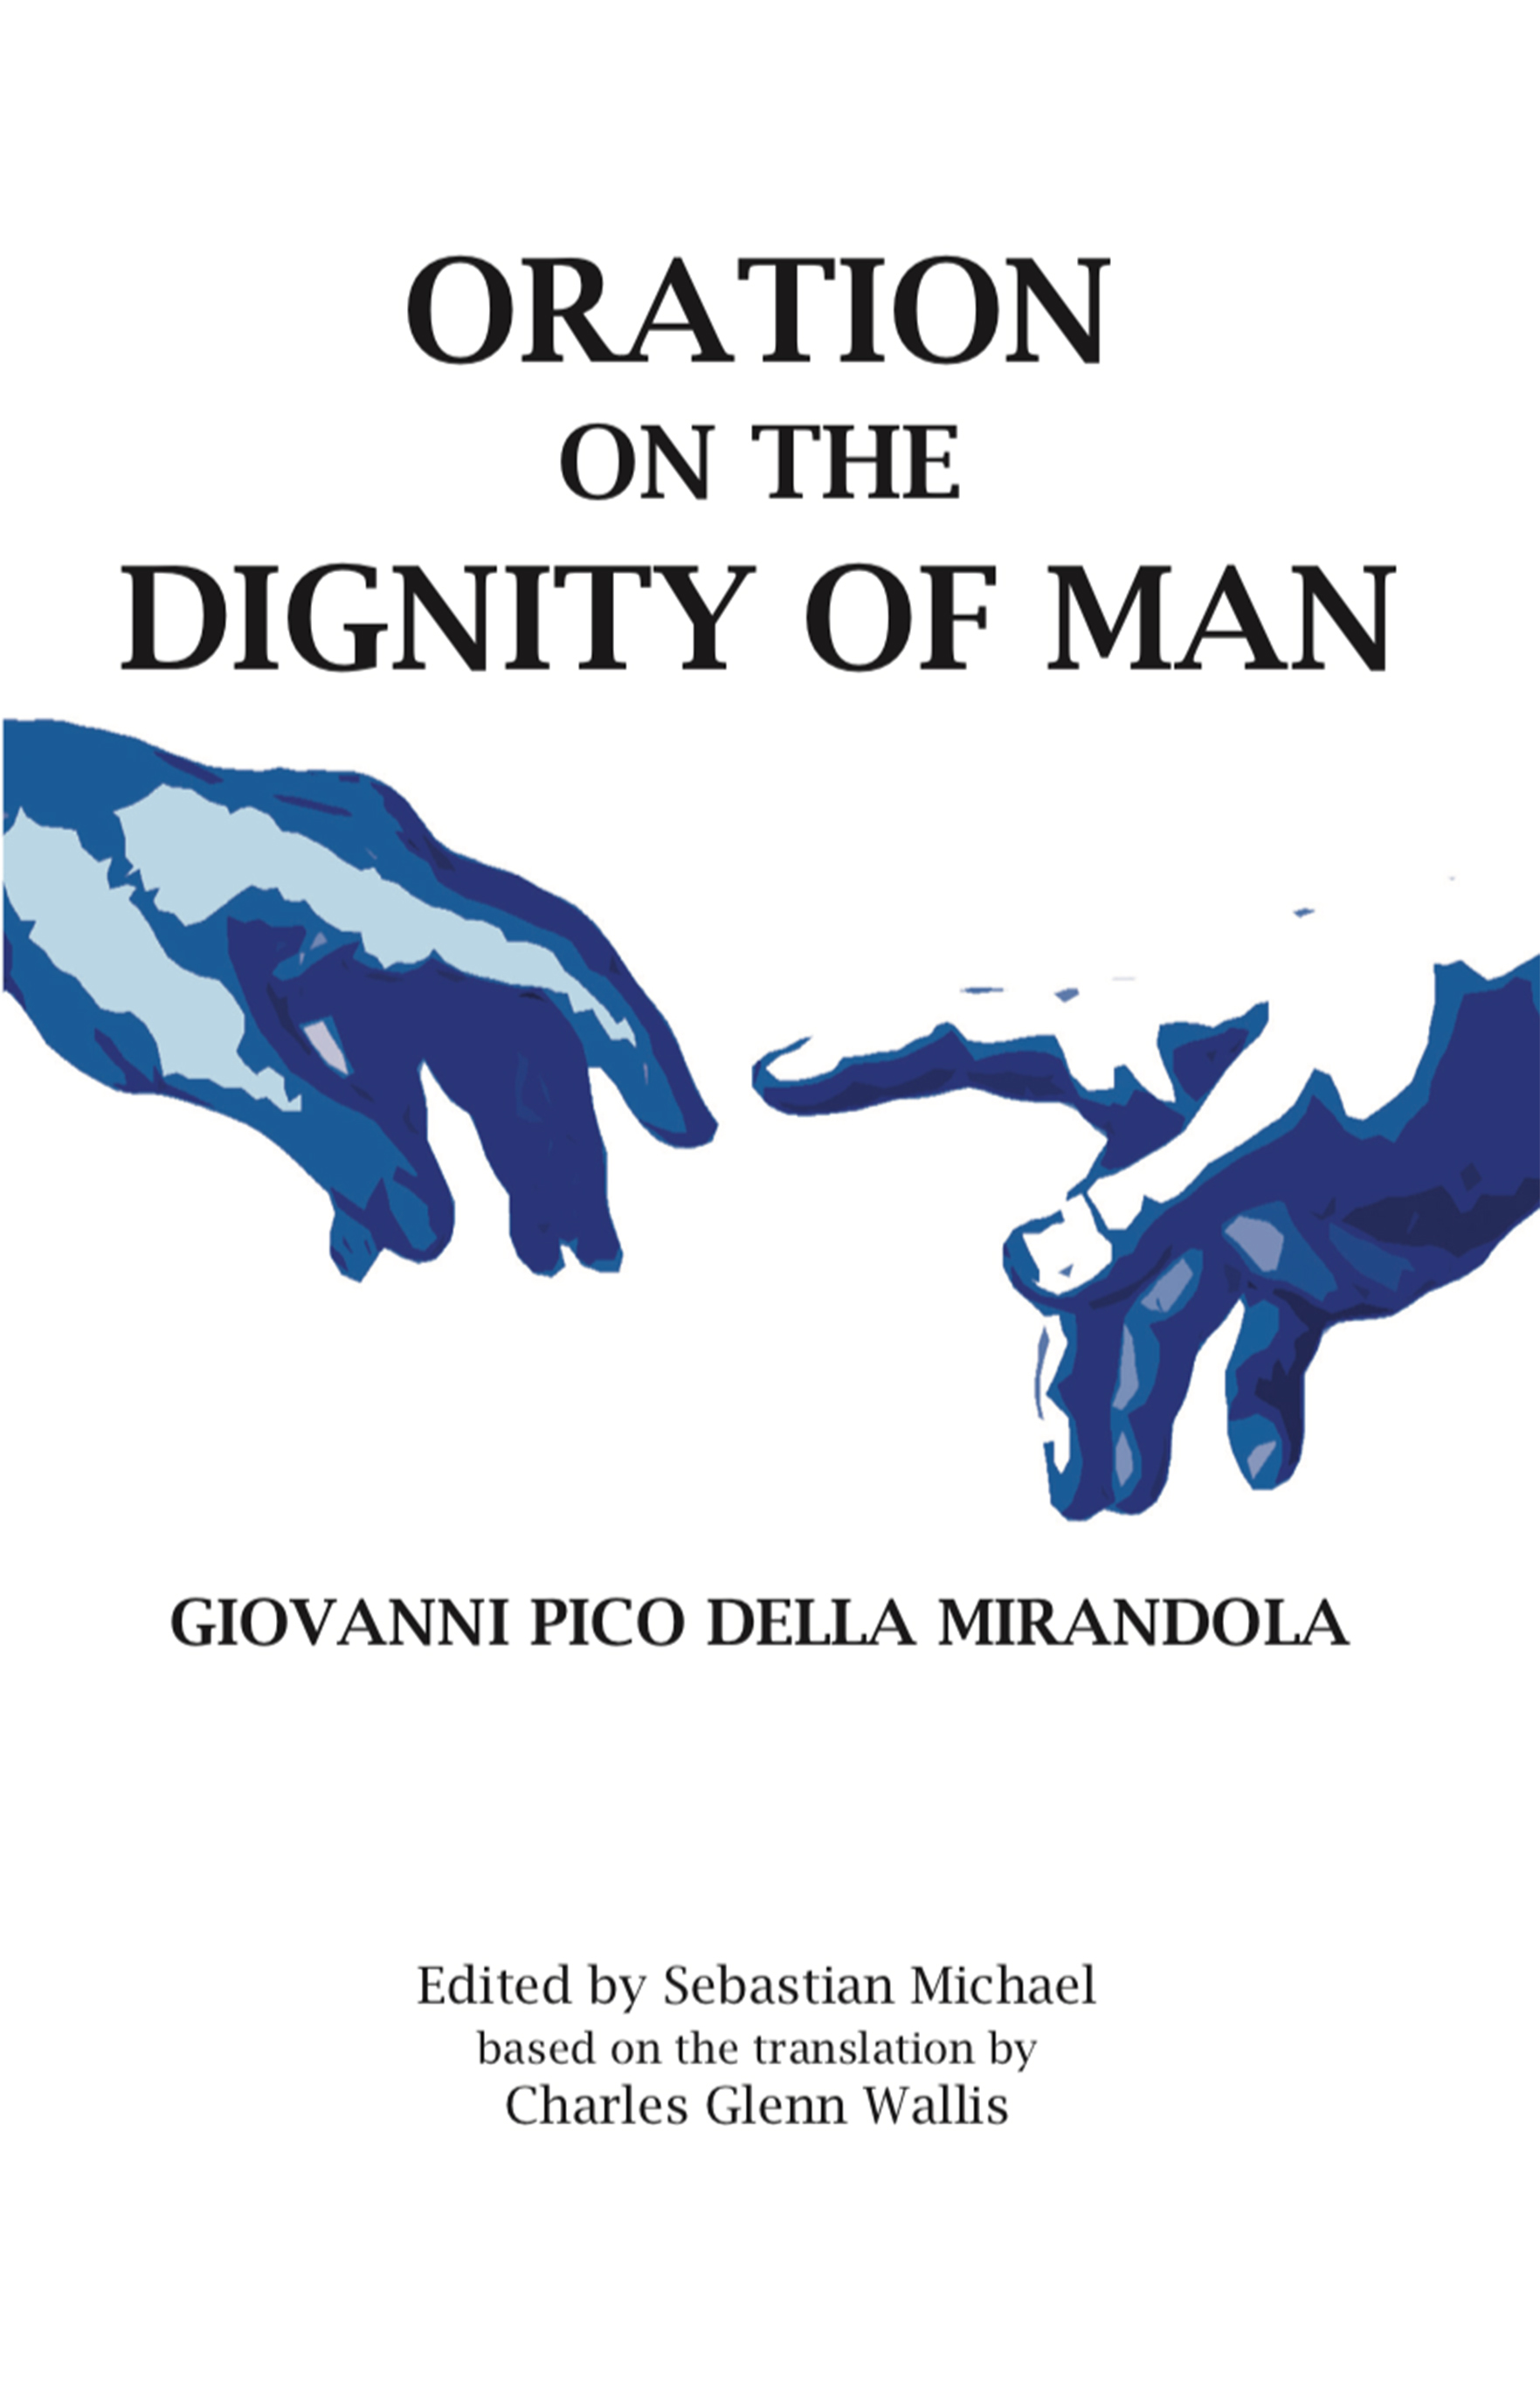 "on the dignity of man Free essay: oration on the dignity of man: analysis pico della mirandola in his work, ""oration on the dignity of man"", re-evaluates humanism and humans in."